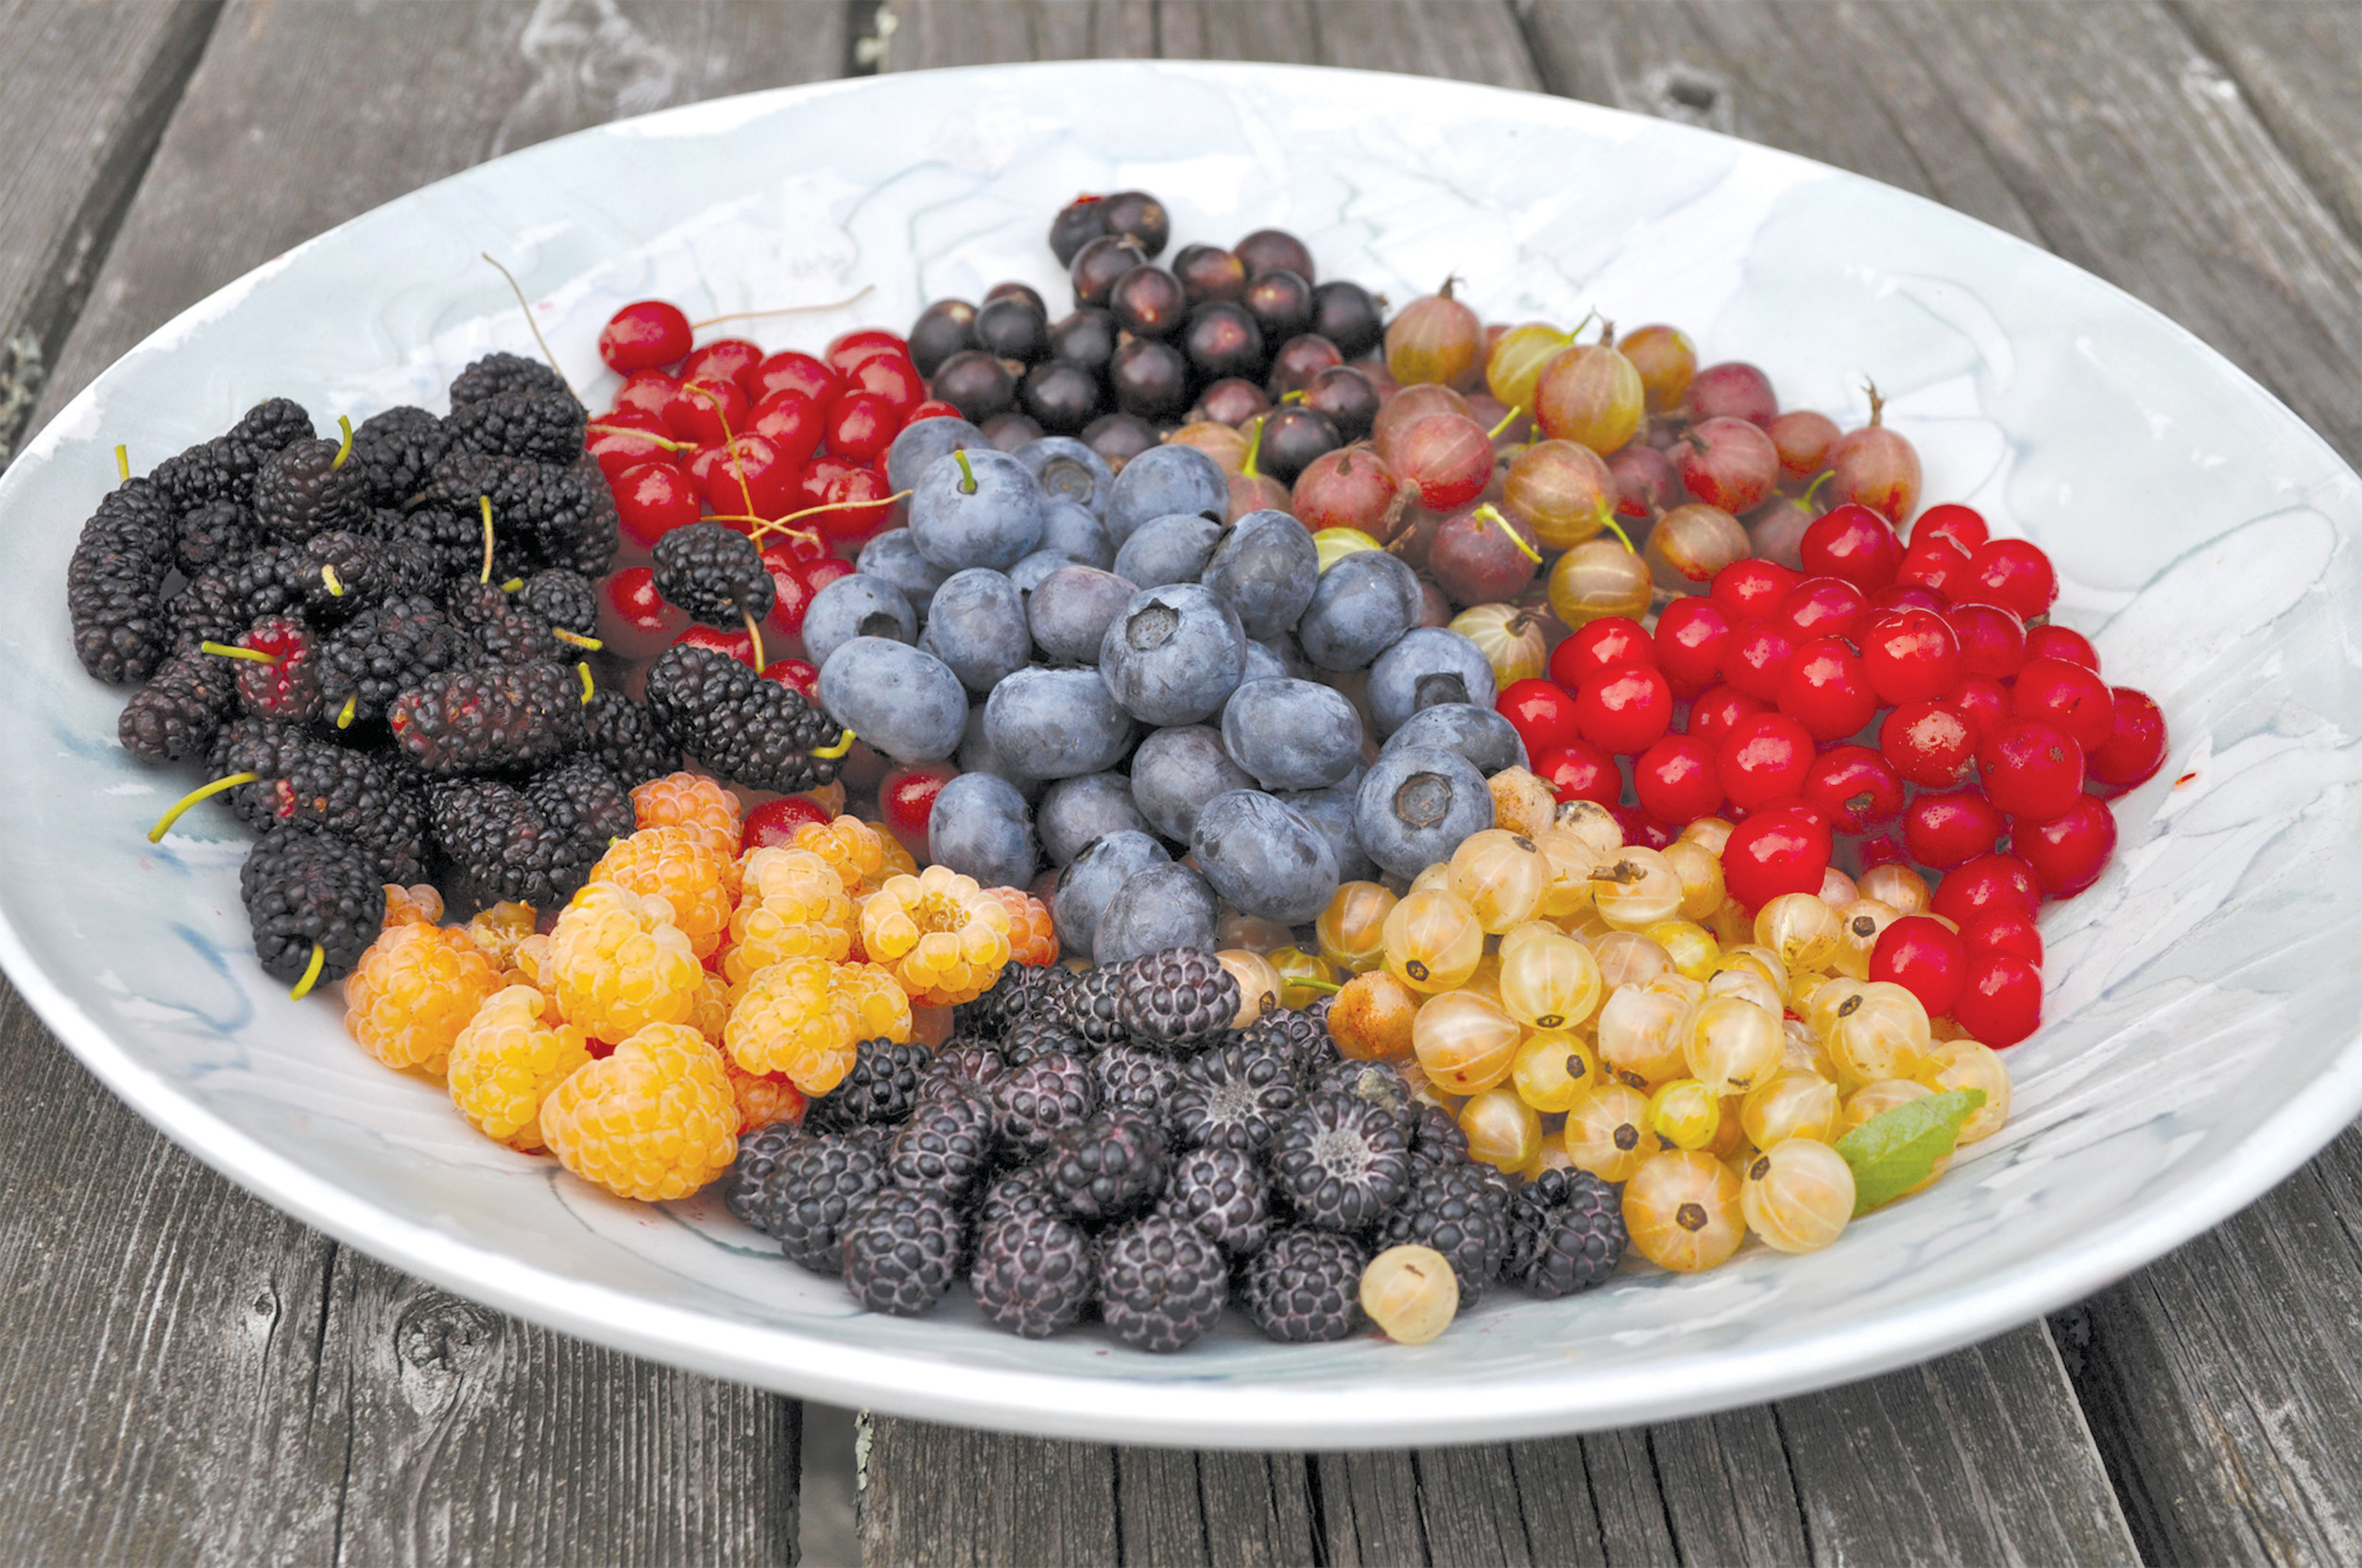 A bowl of berries grown and harvested in New Paltz, New York, is seen. Berries are the quintessential summer fruit, but with a choice of appropriate varieties, raspberries, blackberries and blueberries can go on to yield their delectable bounty into fall.